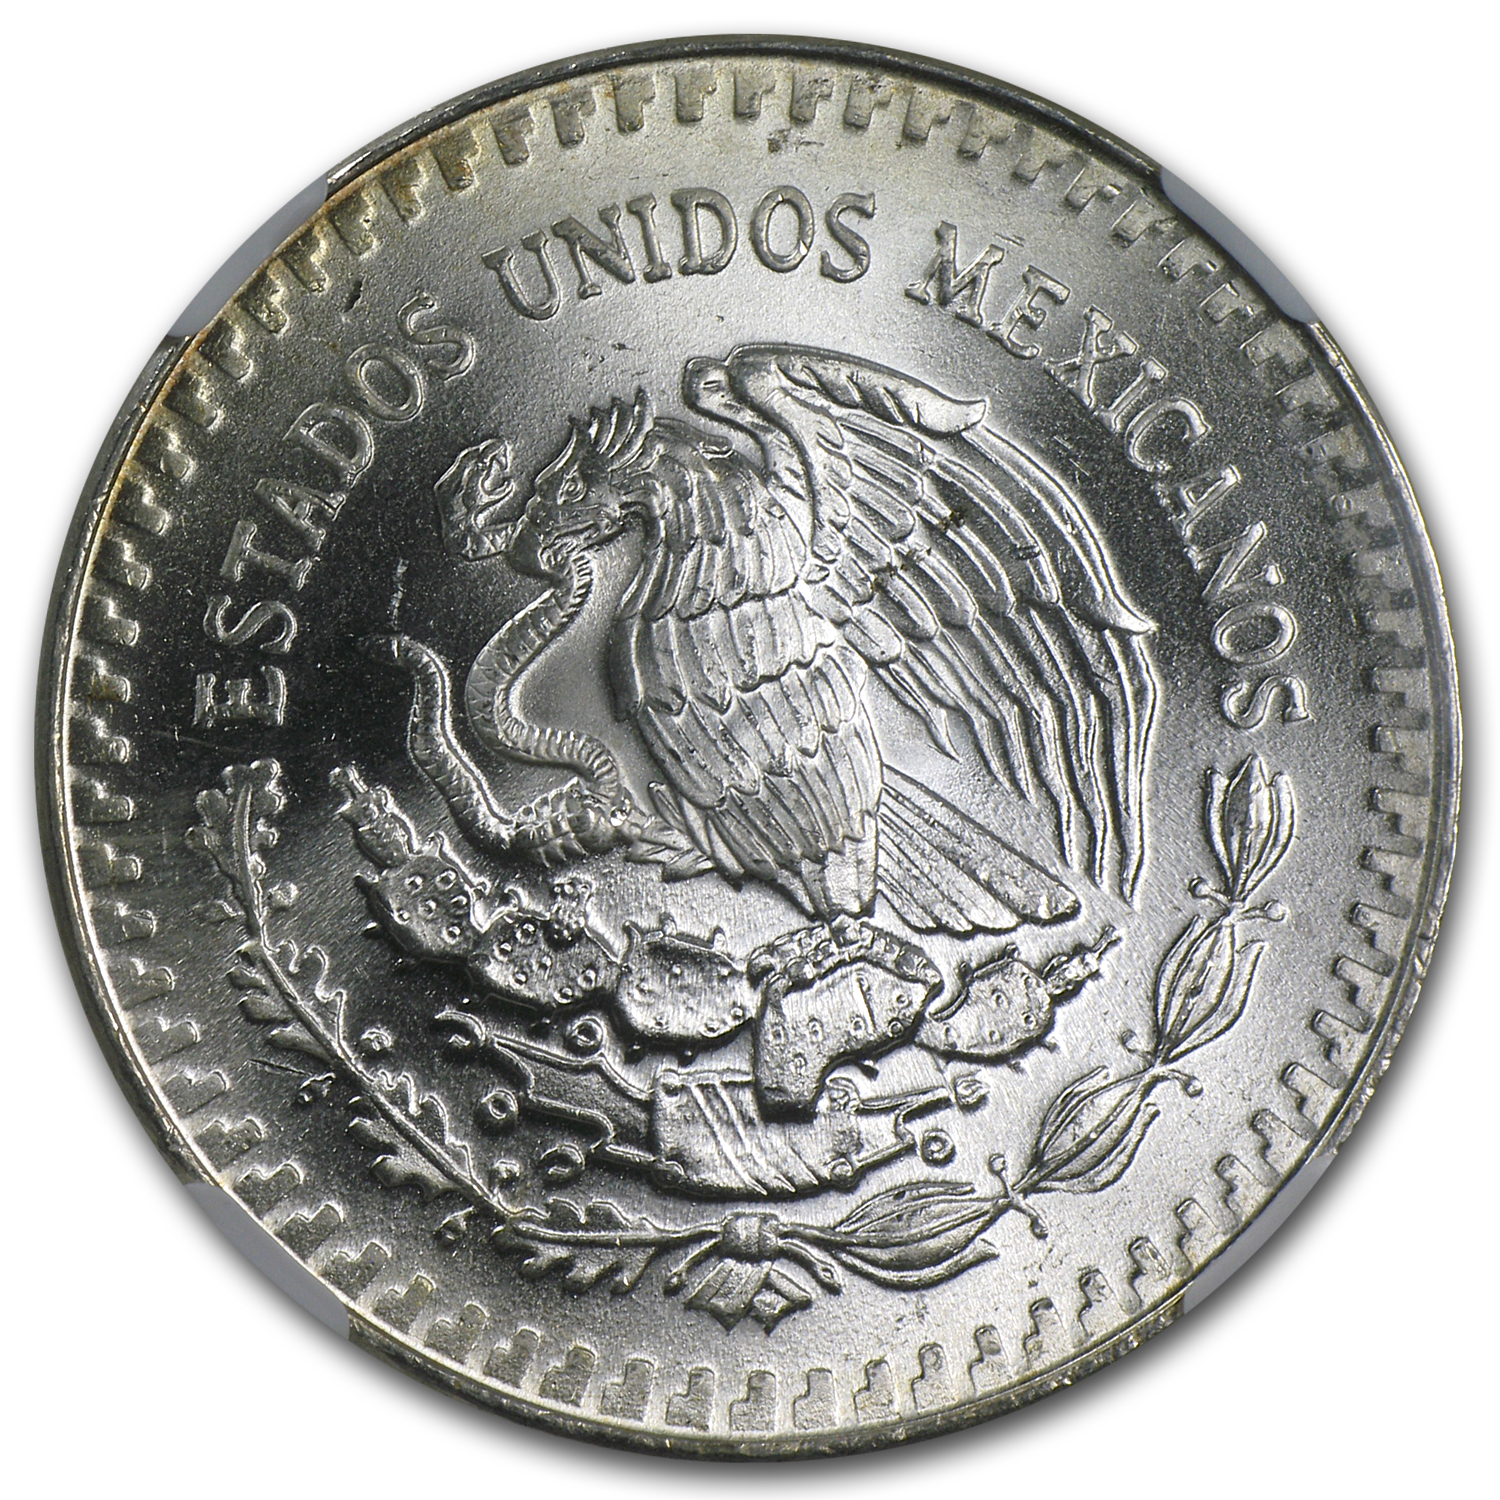 1985 Mexico 1 oz Silver Libertad MS-67 NGC (Toned)